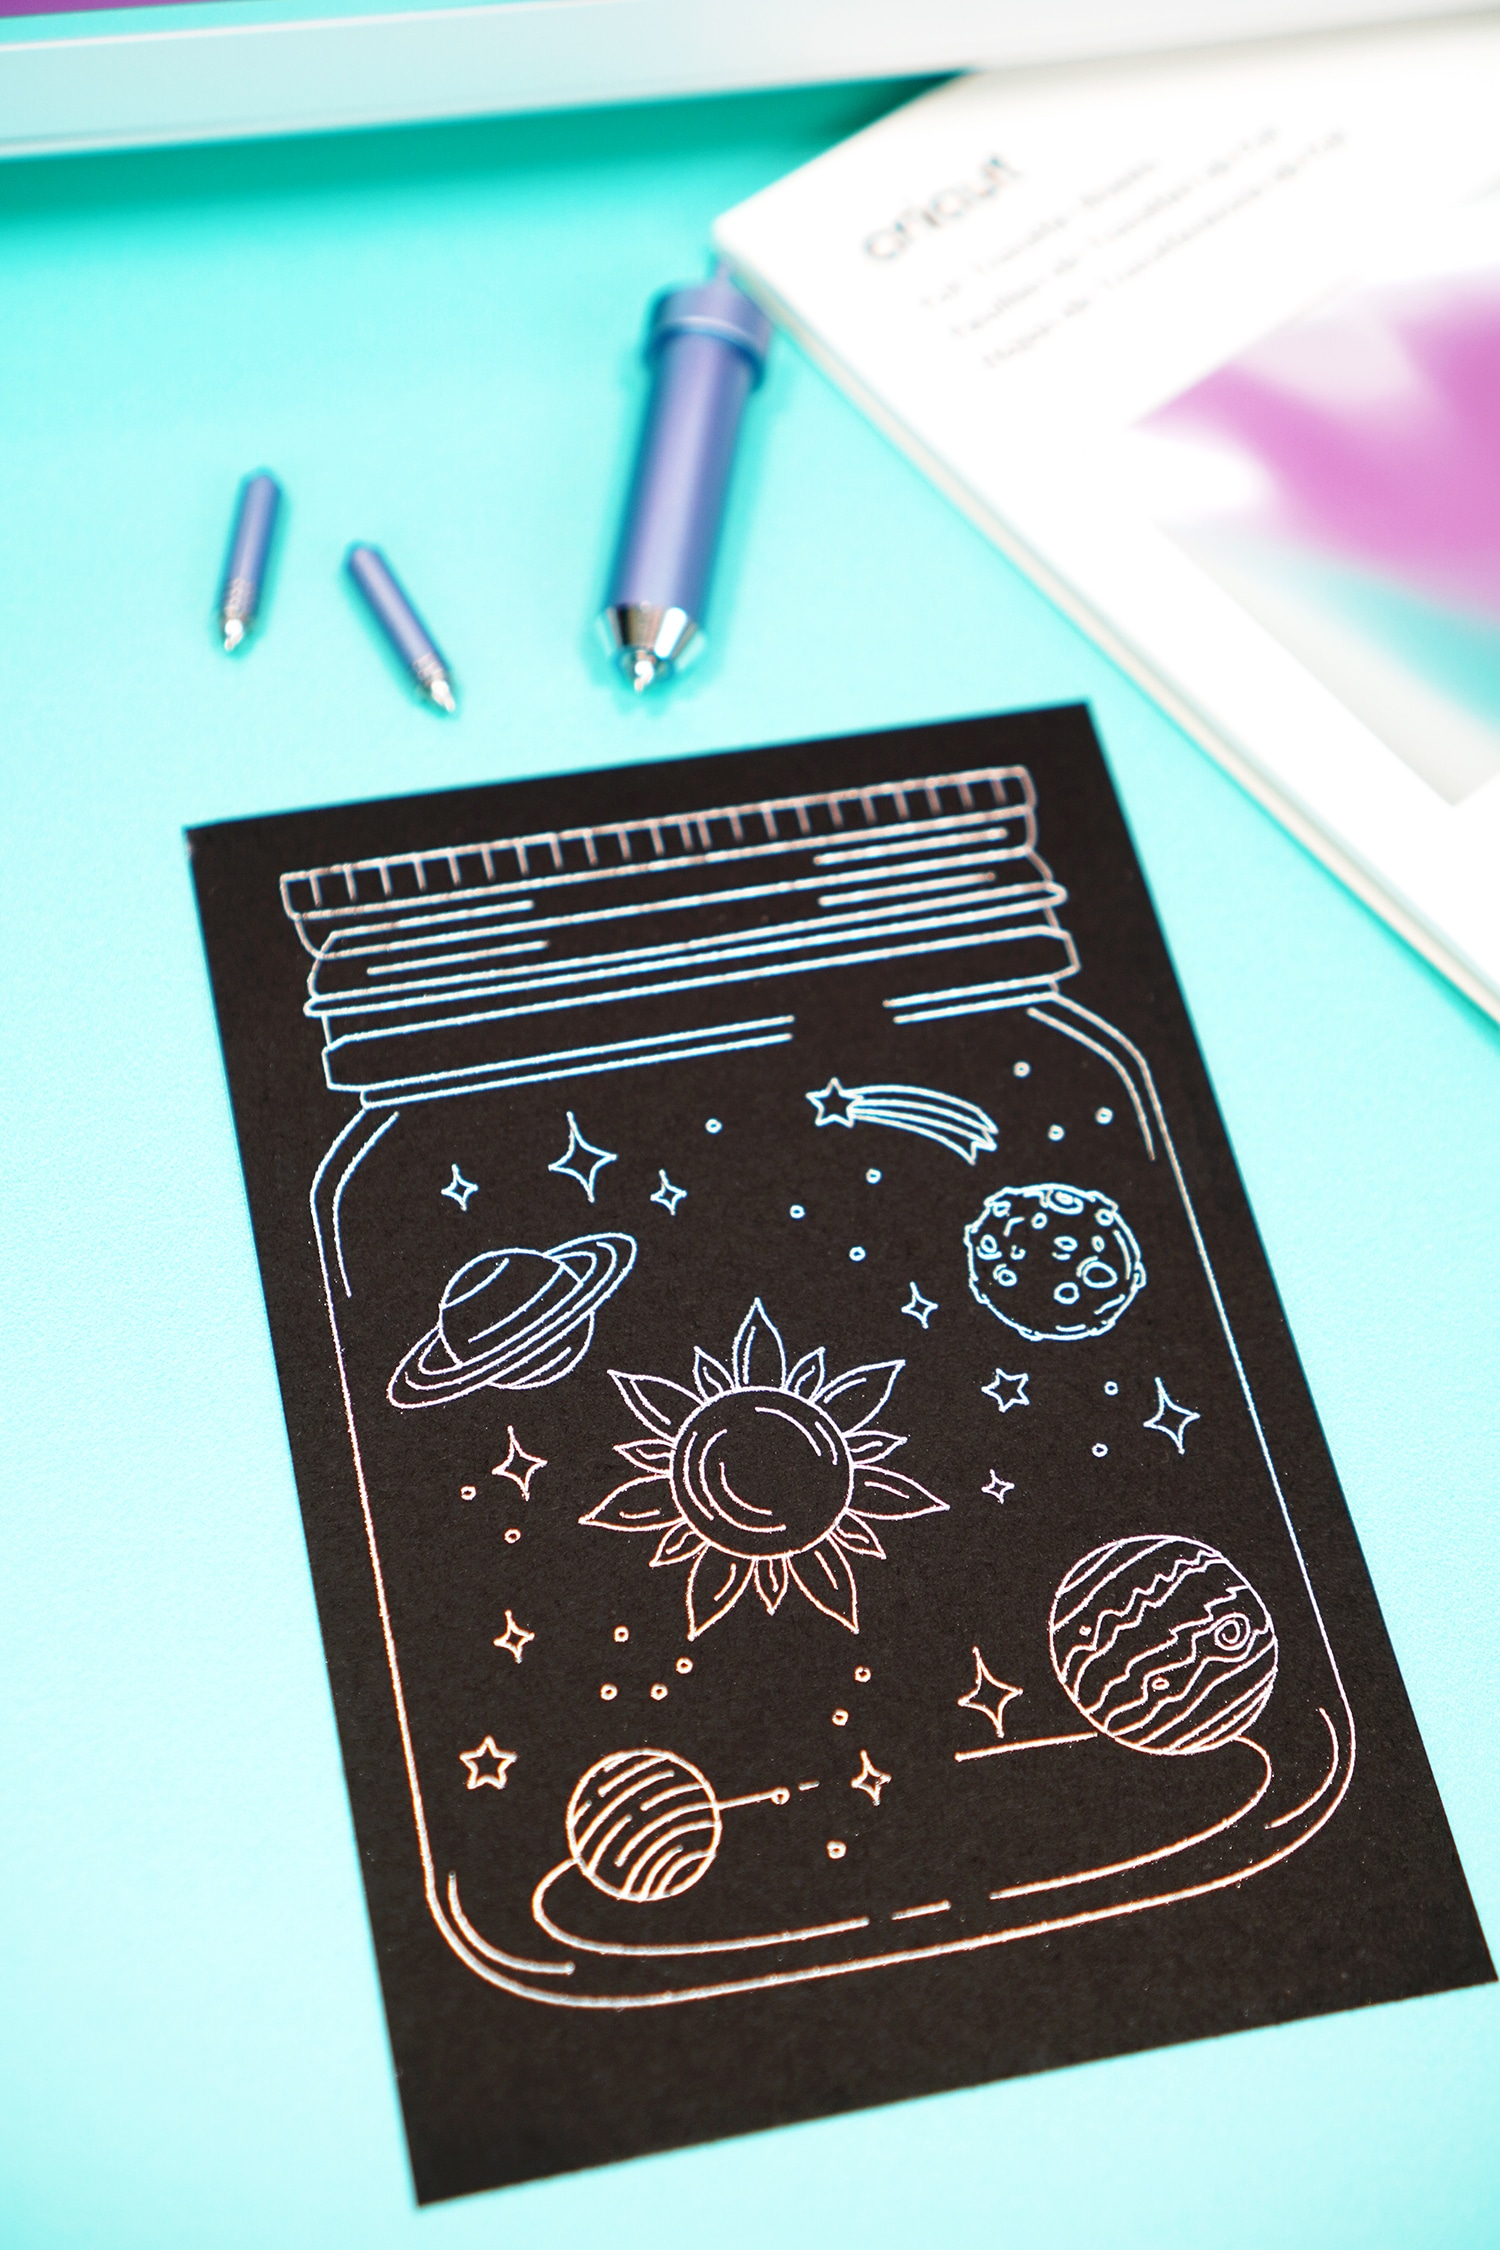 Galaxy in Jar Foiled Print with Cricut Foil Transfer System Tools